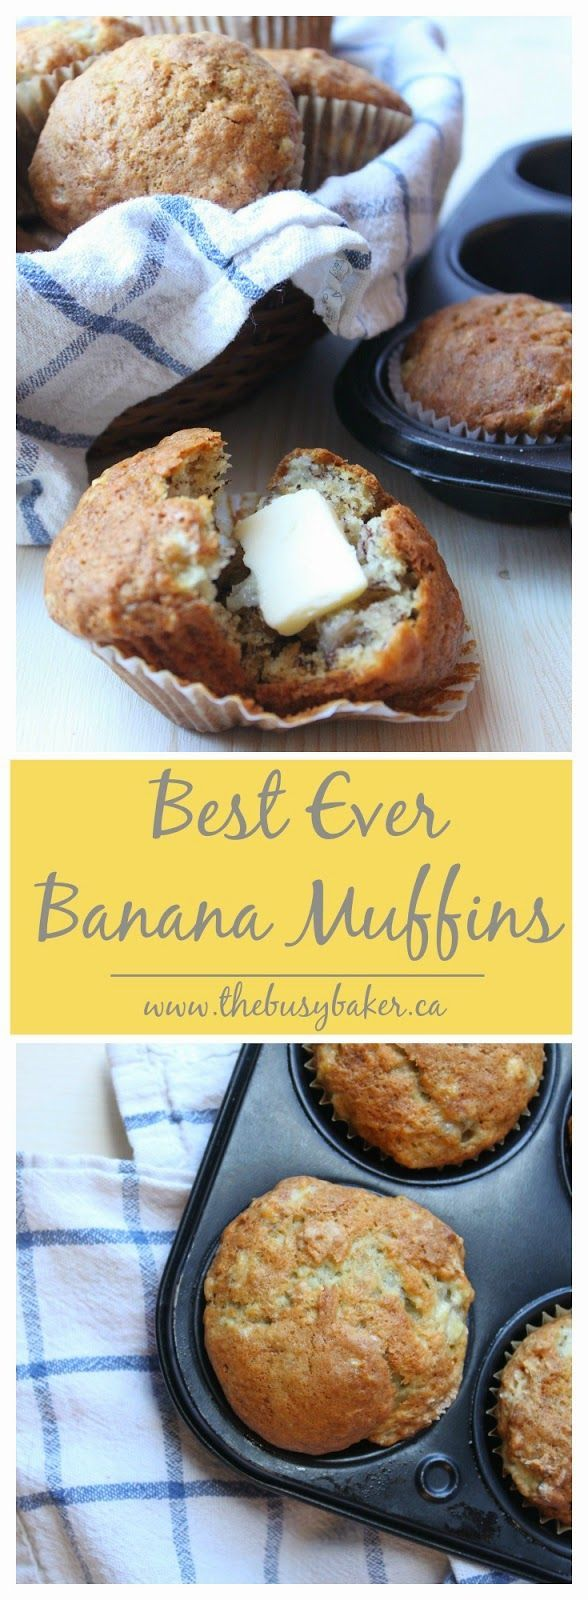 Previous pinner: These are the best banana muffins I have ever had! And so simple to make!